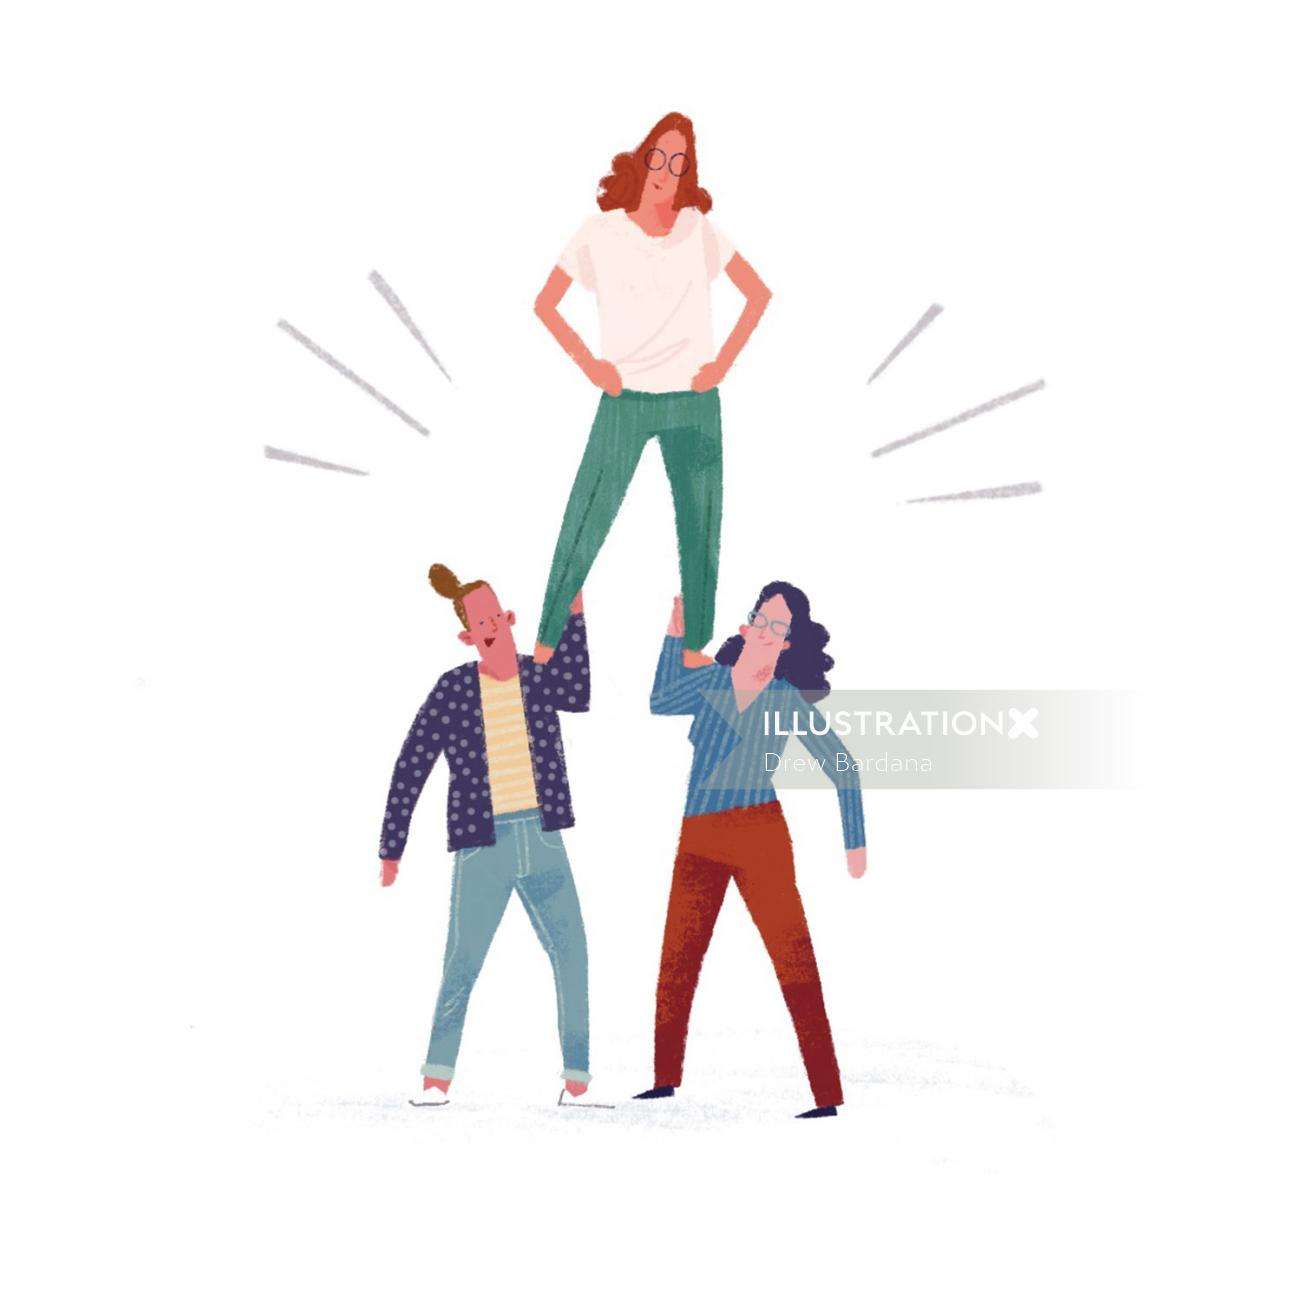 Two women holding up another woman on their shoulders.